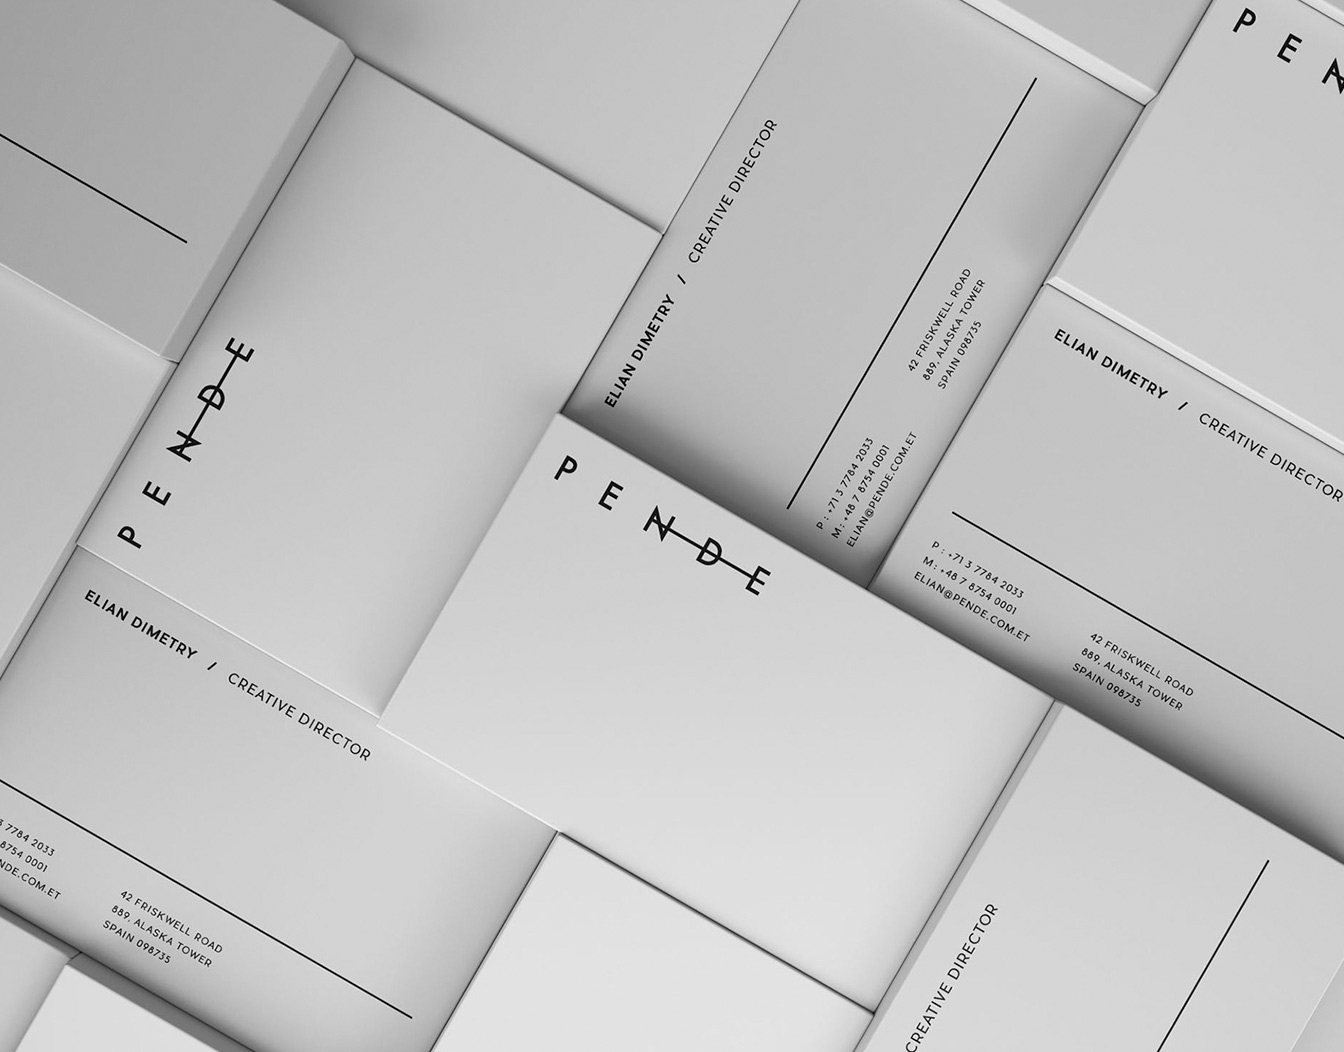 Black and white business cards puzzled together